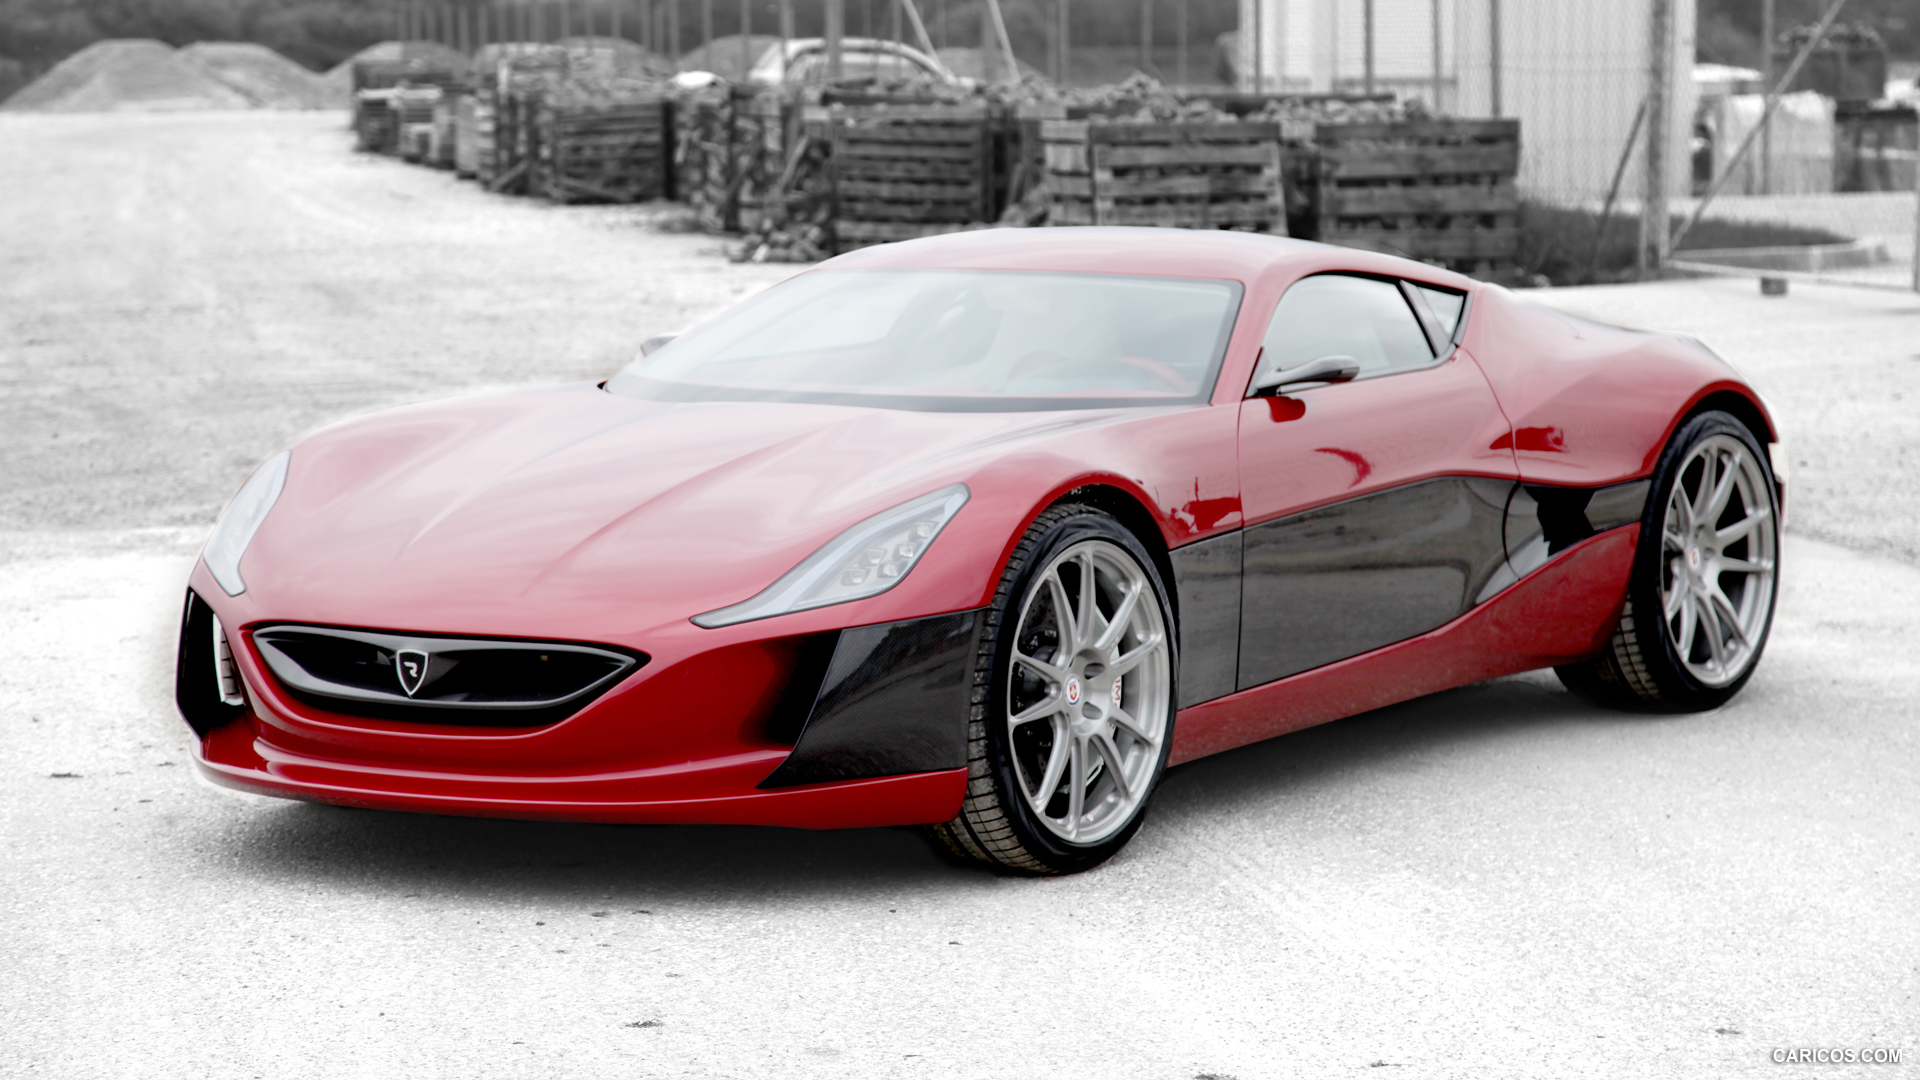 together with Rimac Concept One Concept S 116448p1 additionally 2 Series Coupe moreover 10 Retro Rear Drive Heroes You Can Buy For 3000 in addition Bmw E 38700. on e30 weight distribution